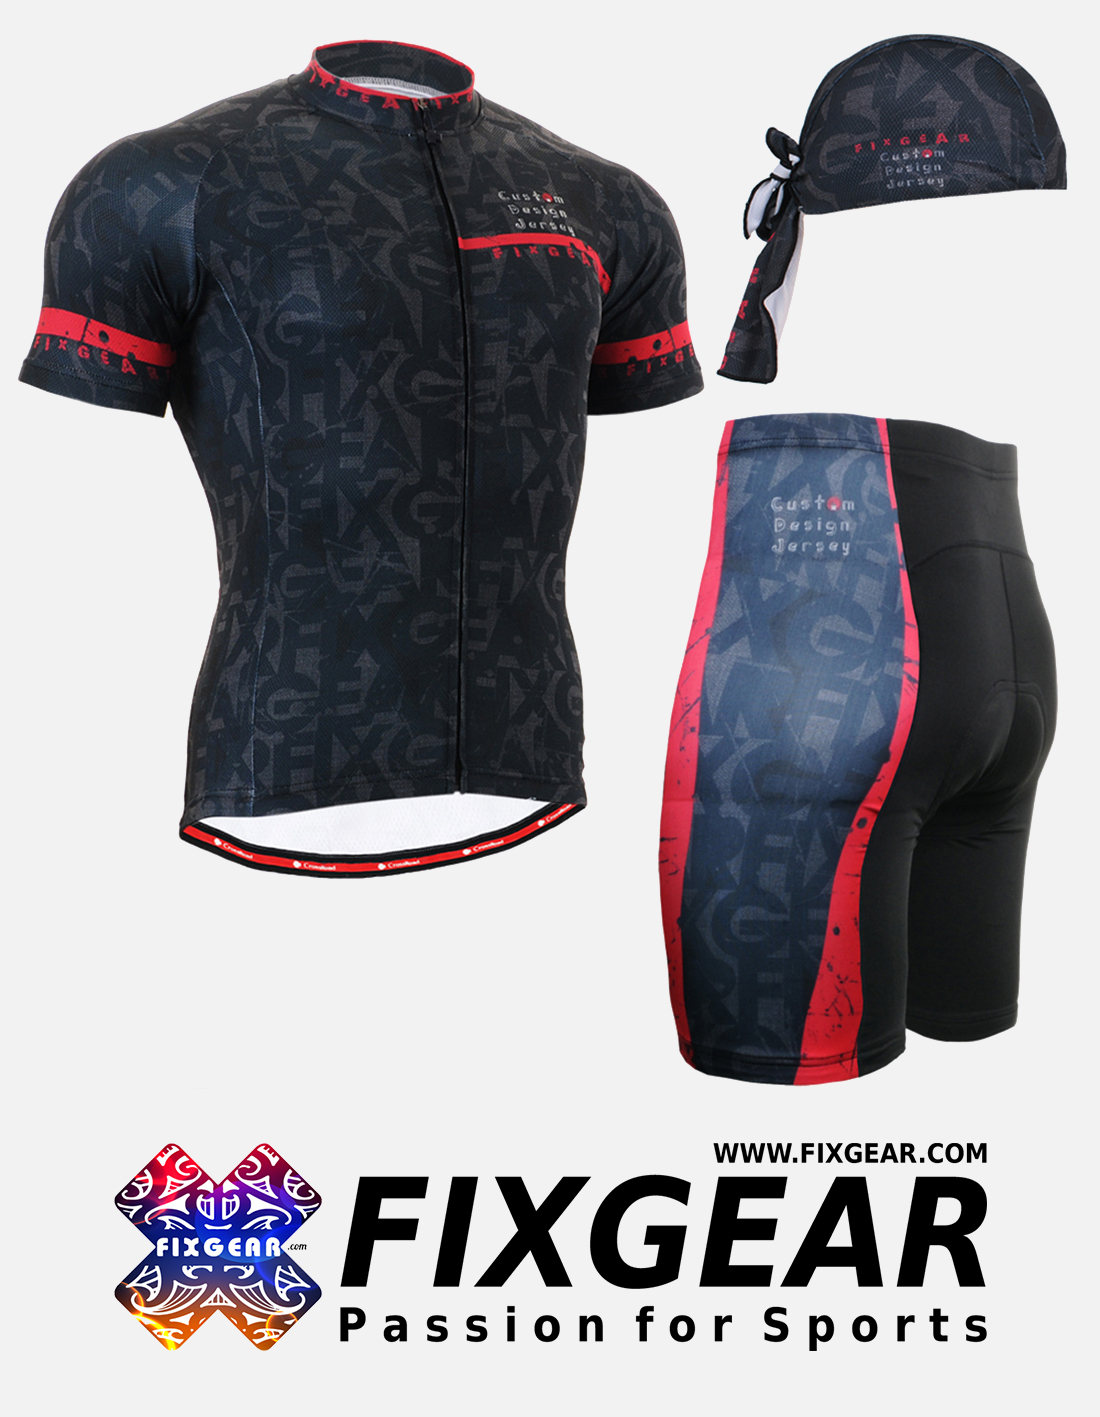 FIXGEAR CS-G602 Set Cycling Jerseys & Padded Shorts